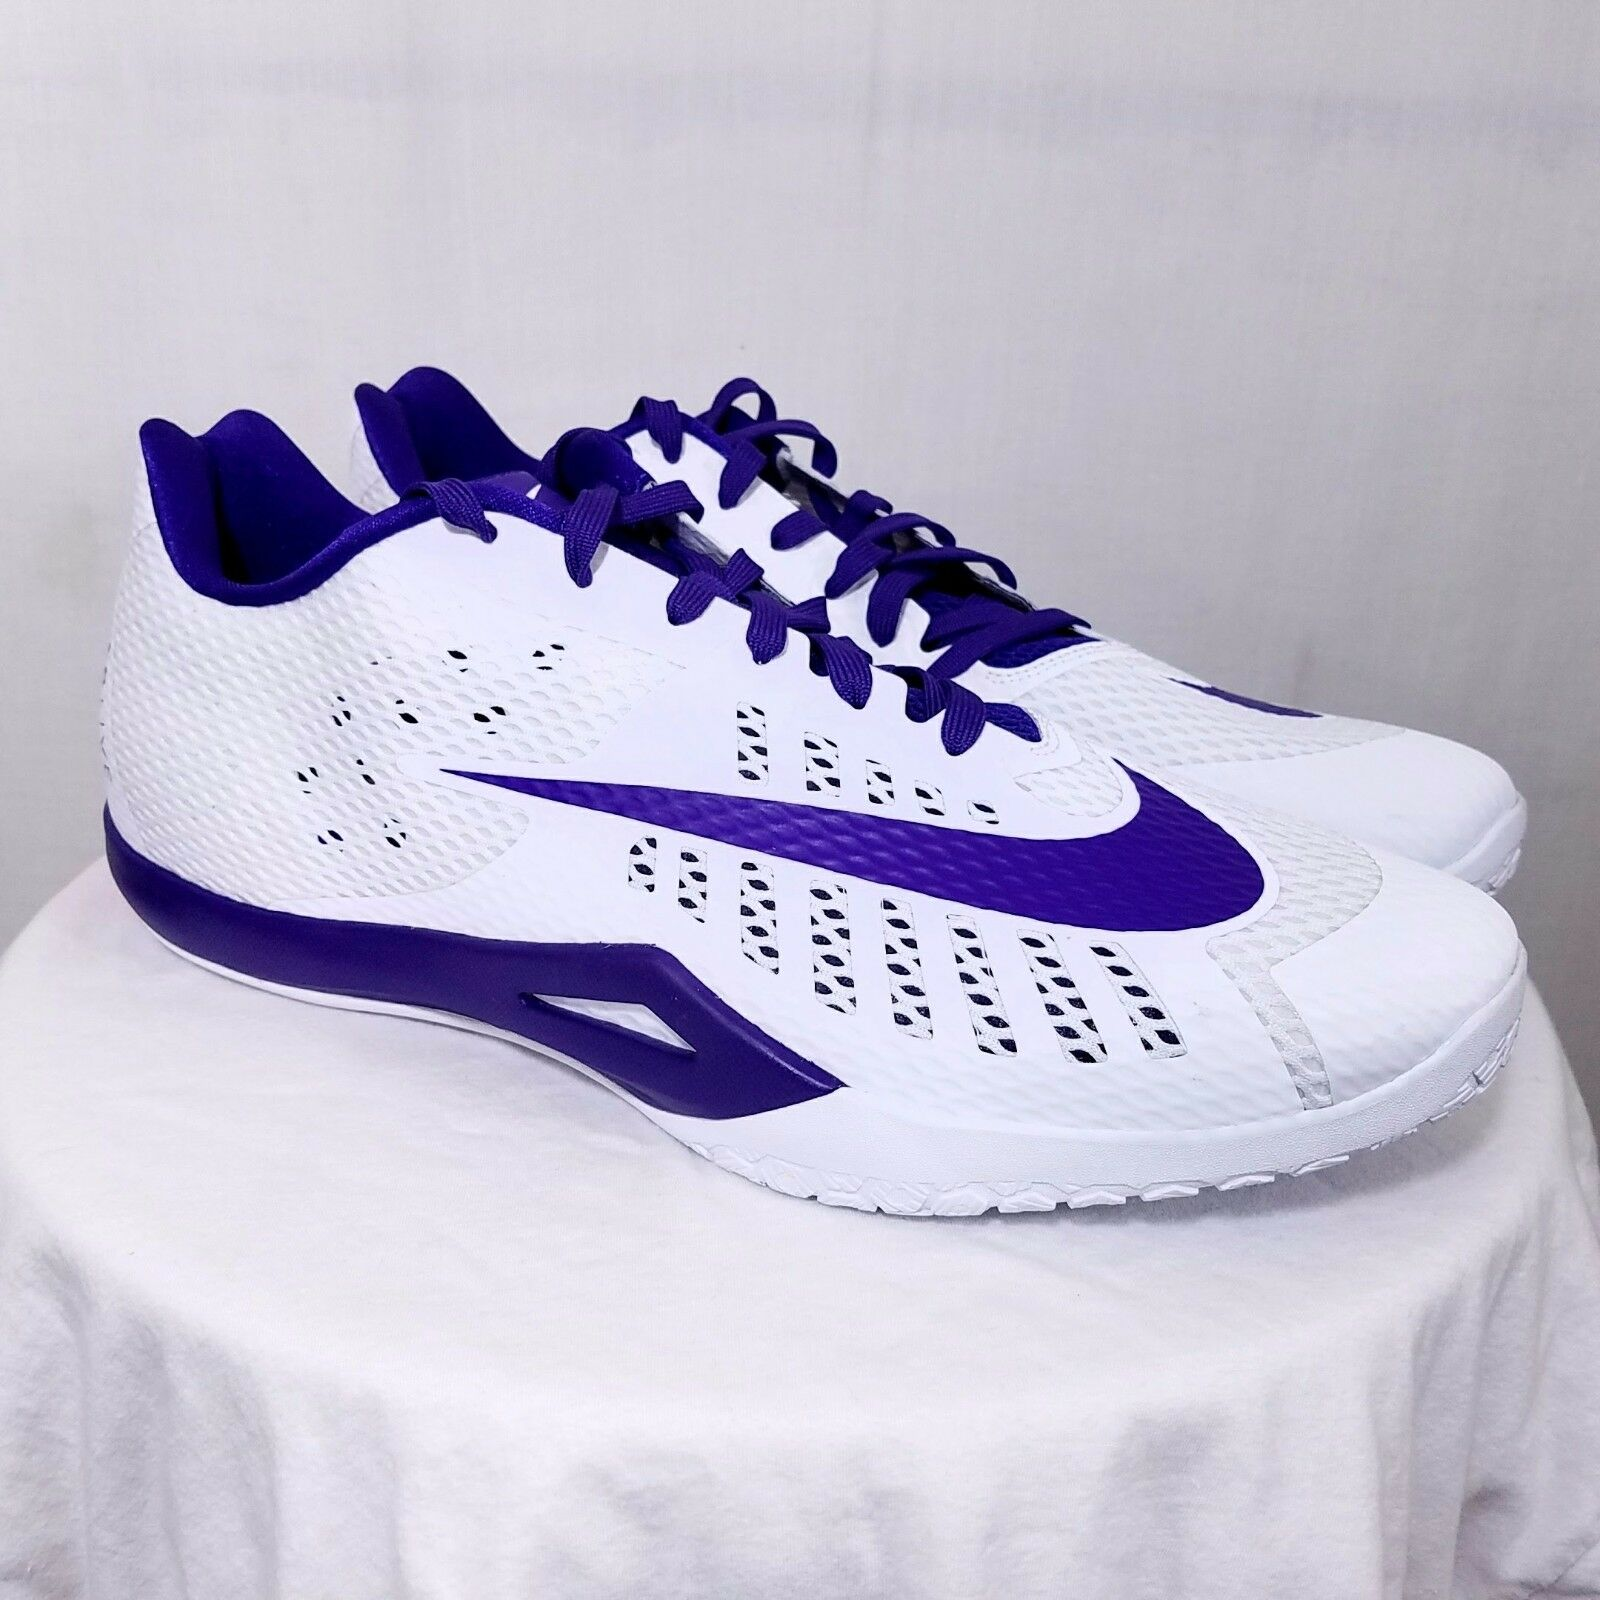 Nike Hyperlive TB Mens Basketball shoes Sneakers 834488 150 Low Purple US 17.5